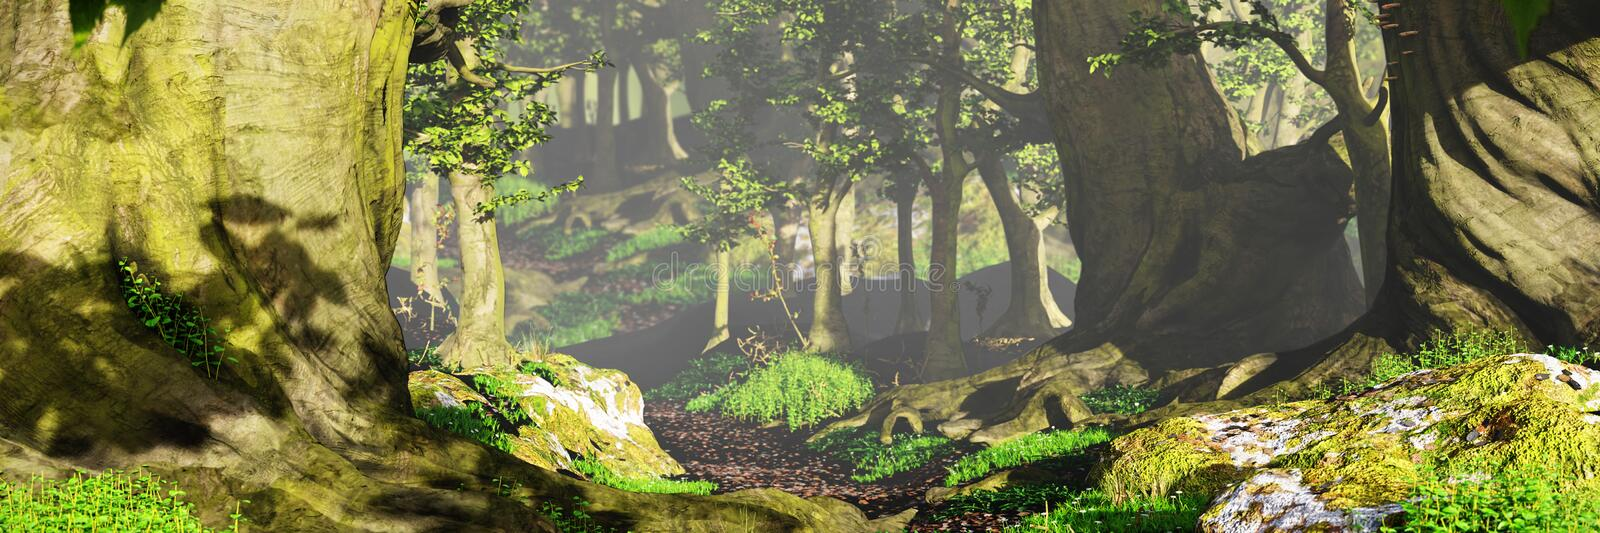 Path through the woods, magical sunlight in fantasy forest royalty free stock images